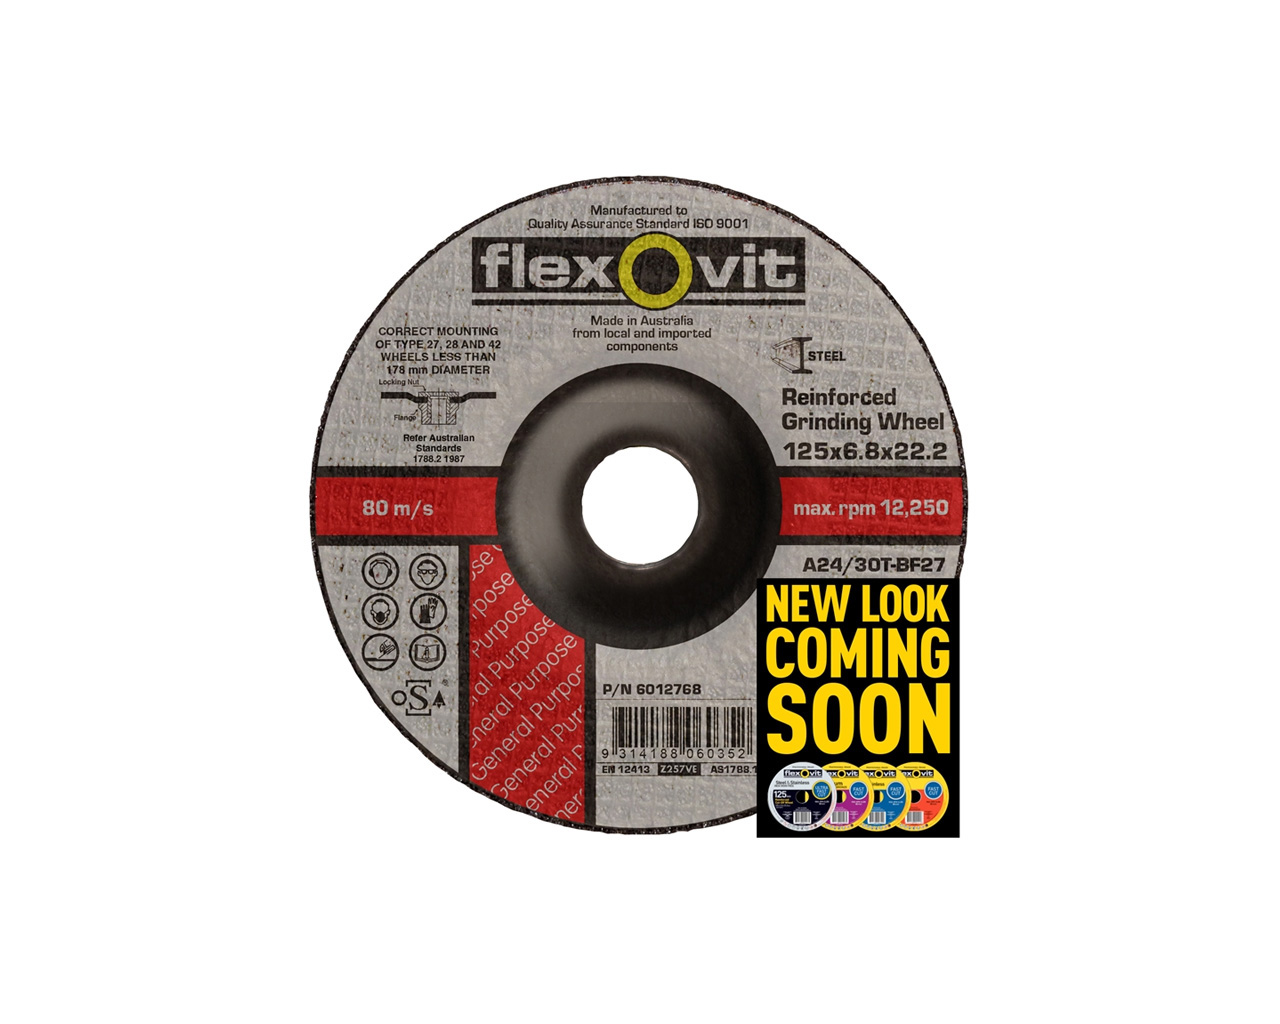 Flexovit 6012768 Metal Grinding Wheel 125x6 8x22mm